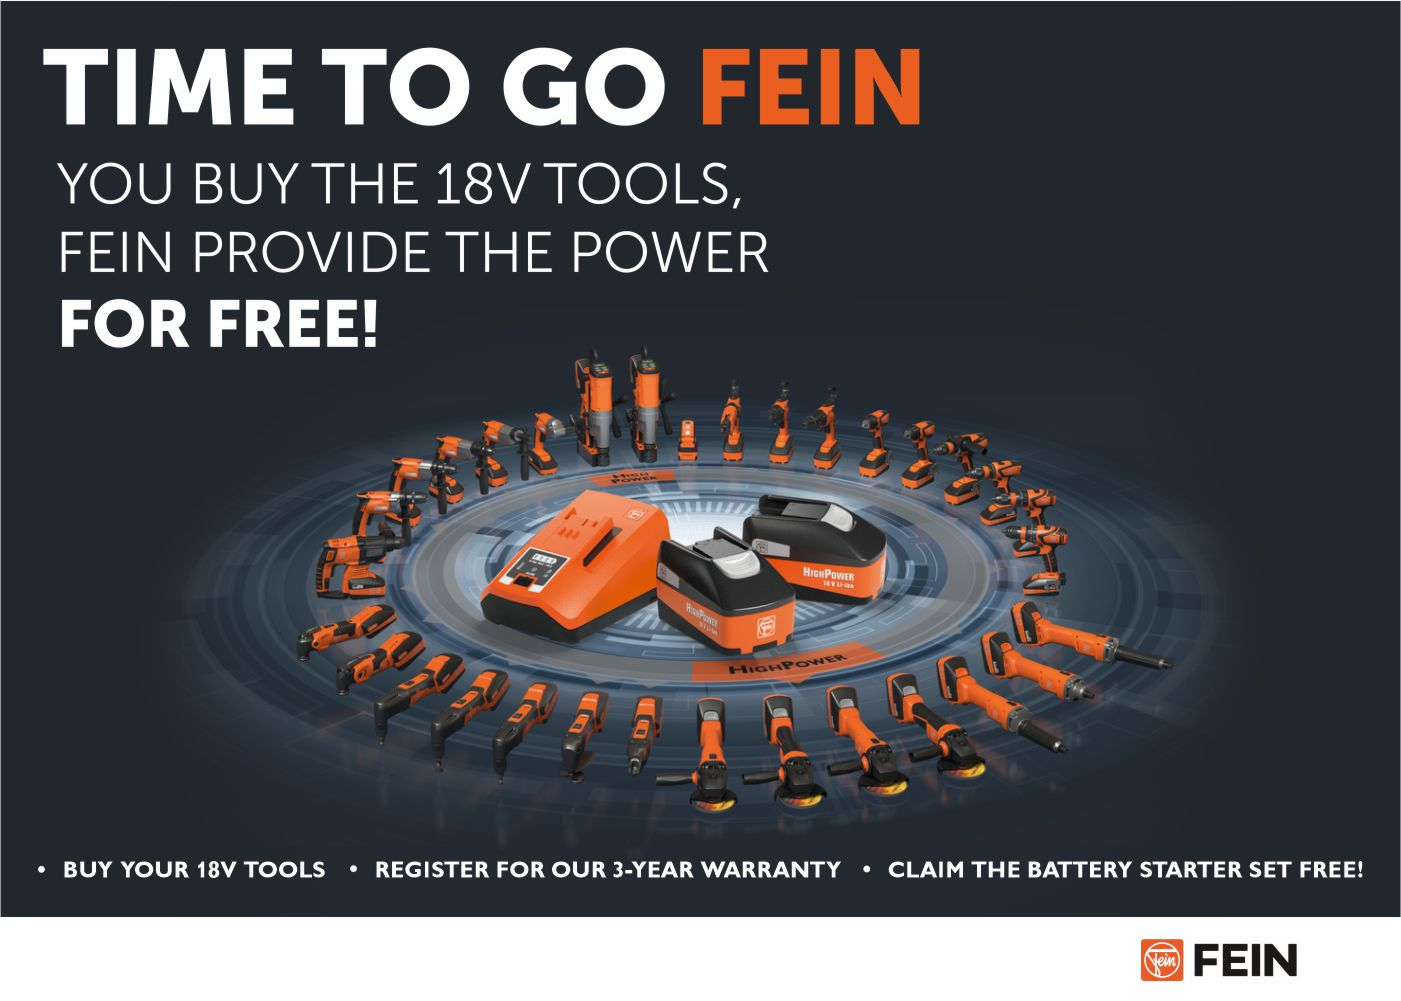 FEIN Two 18V Free Battery Set Promo Slide